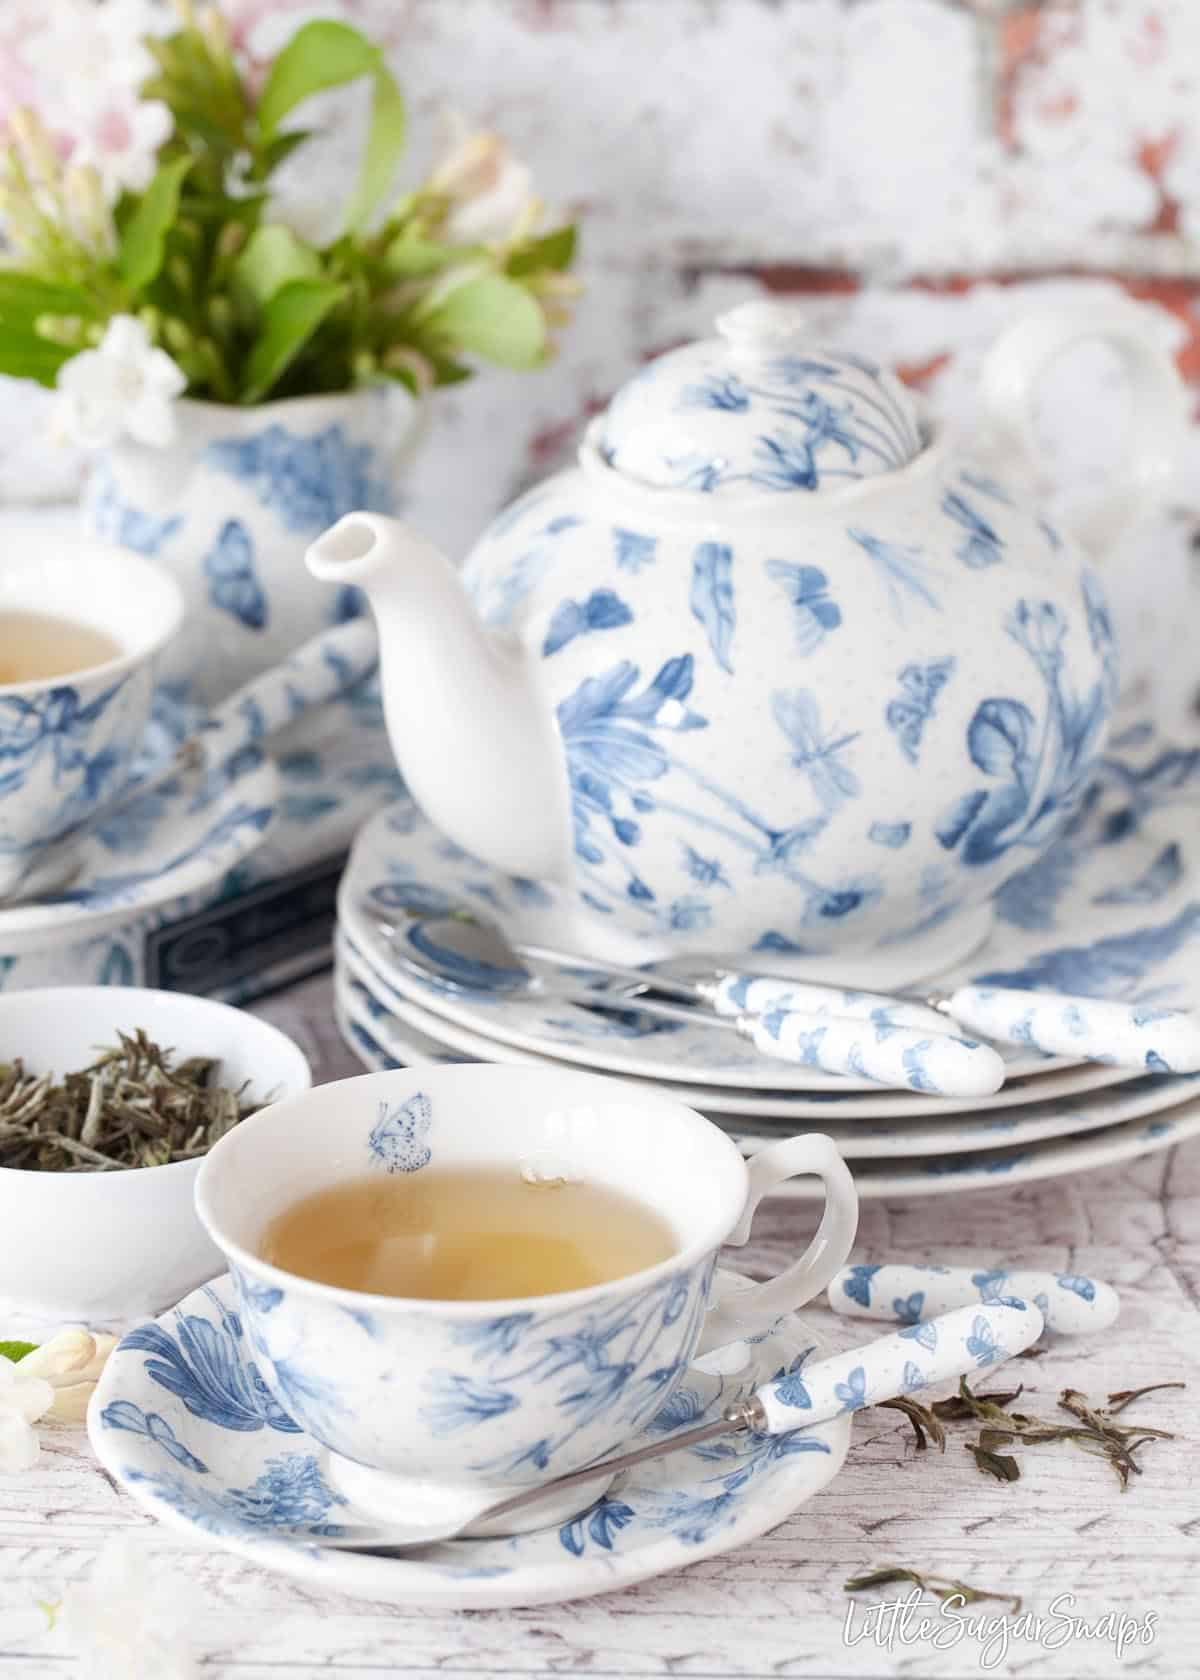 Serving afteroon tea: a cup of tea with a teapot in the background.